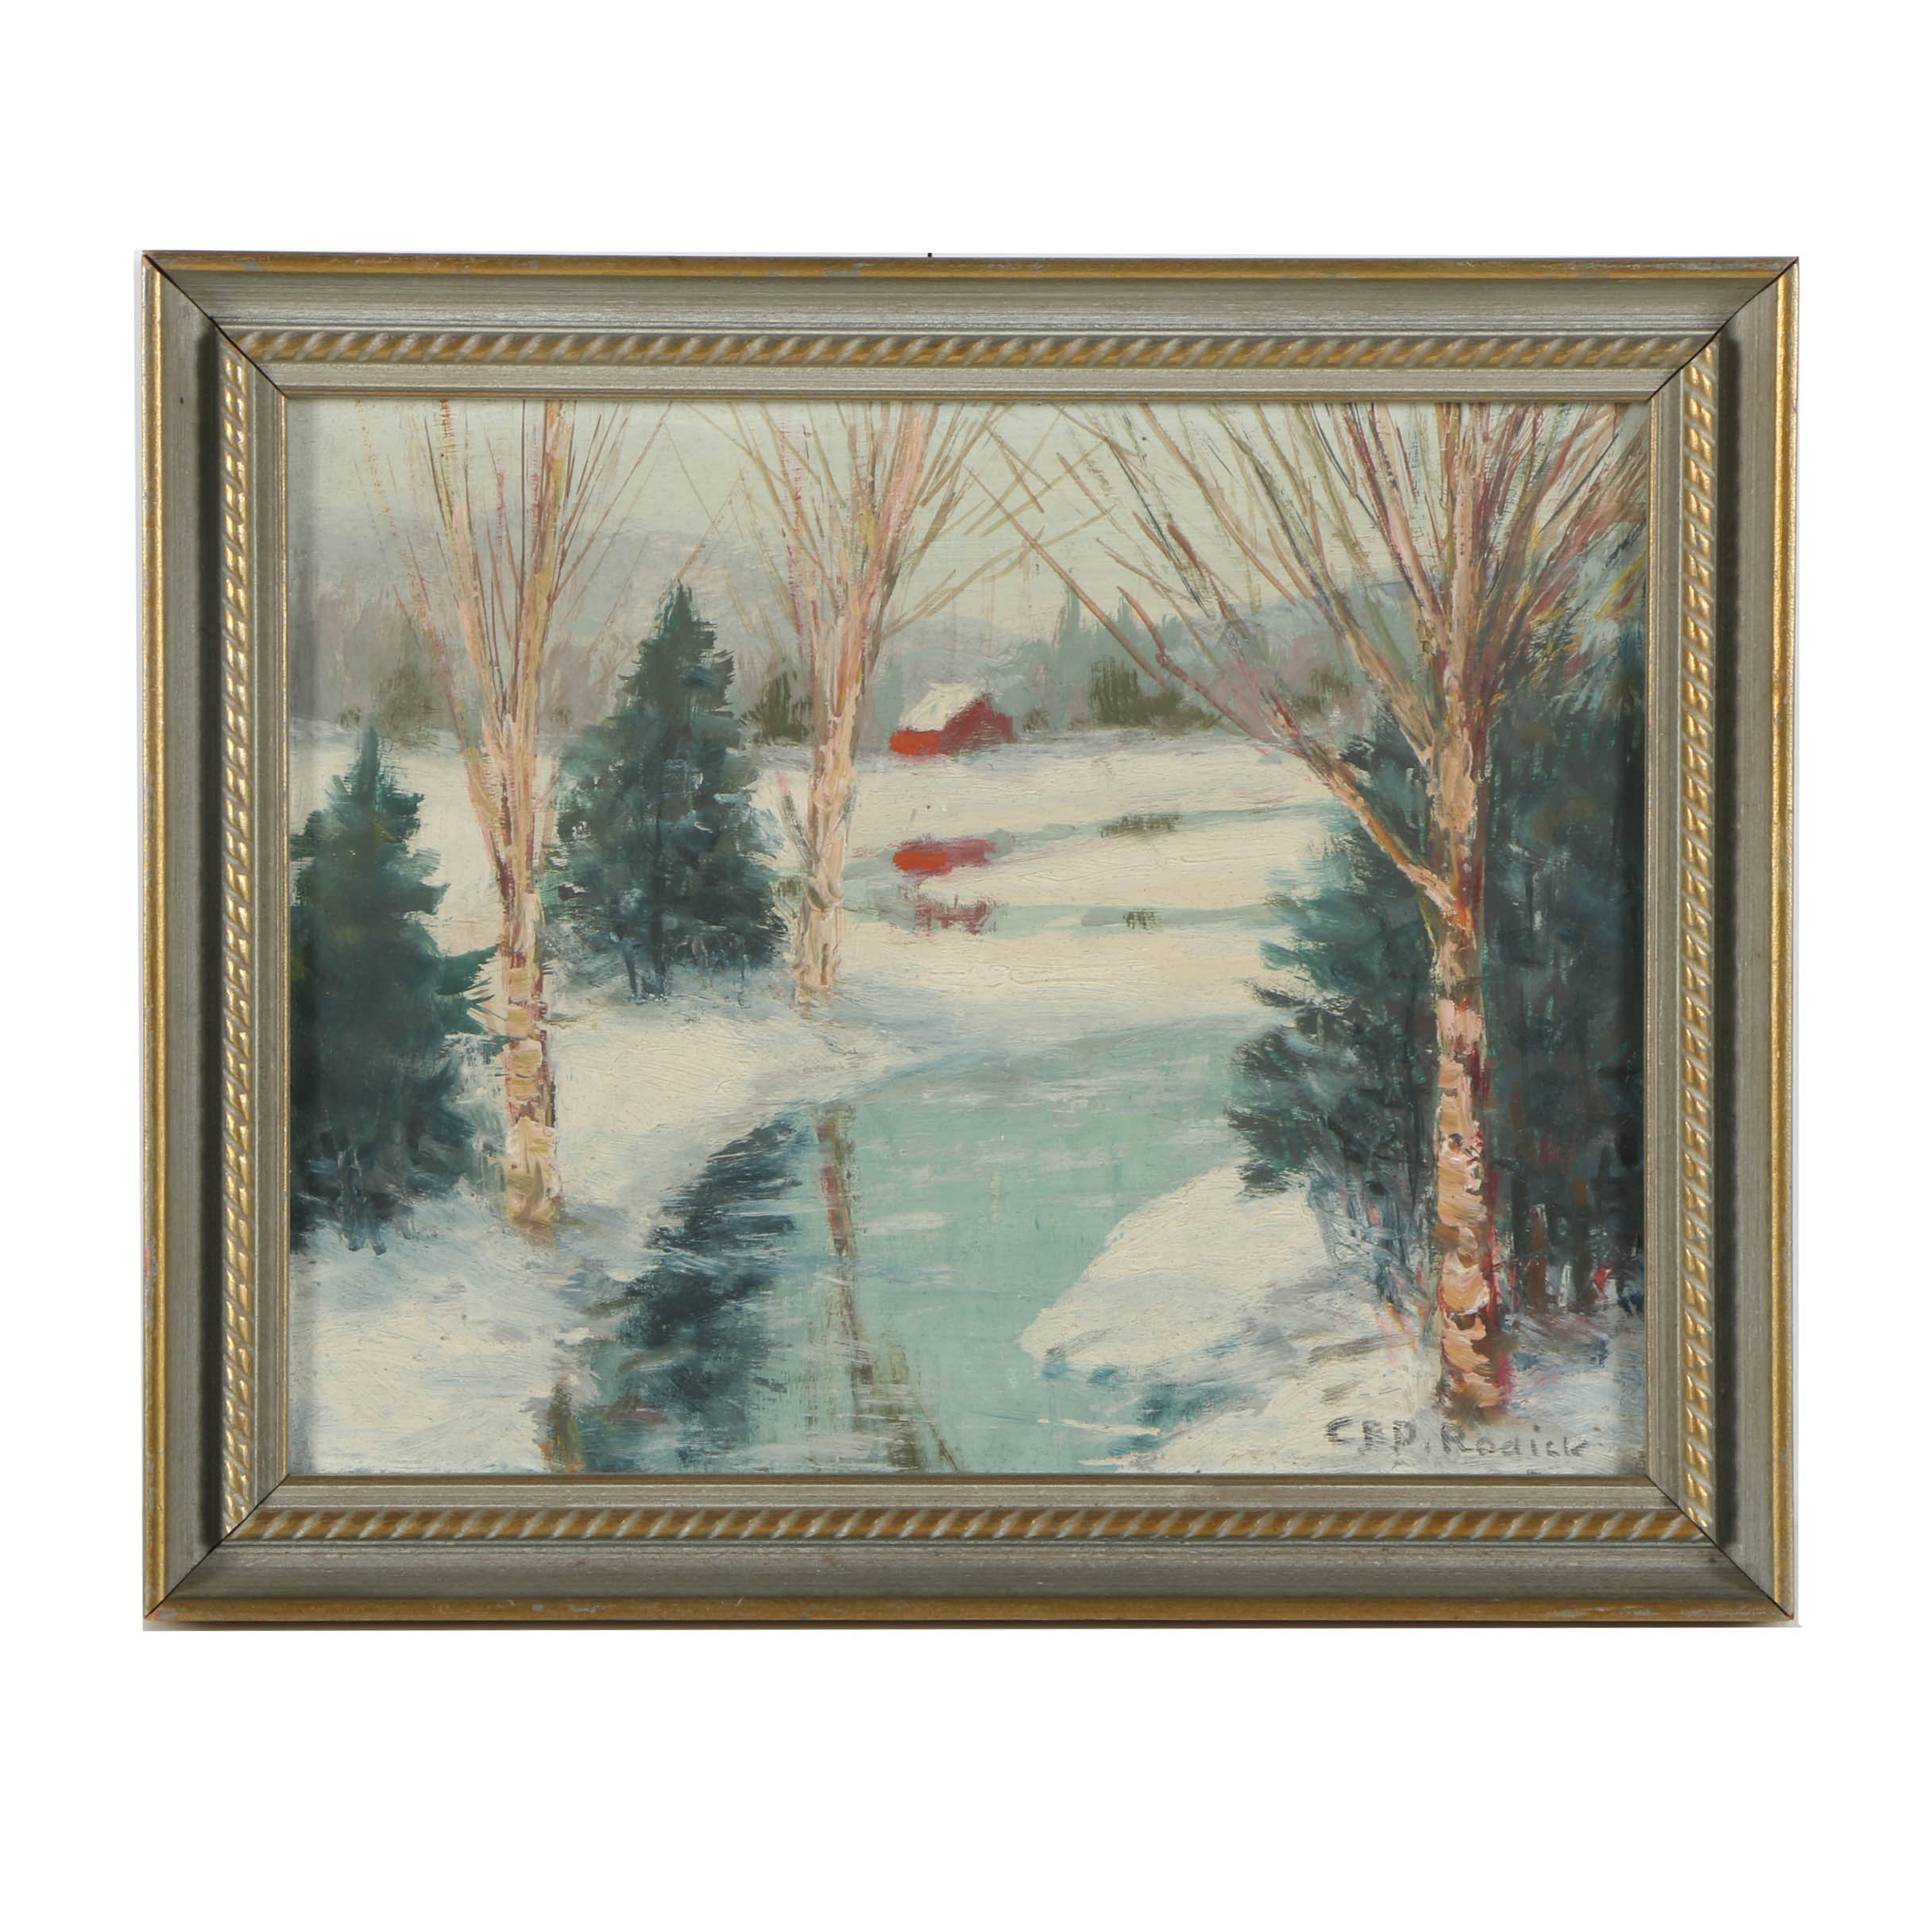 Attributed to Charles E.D. Rodick Oil Painting on Board of a Snowy Lake Scene